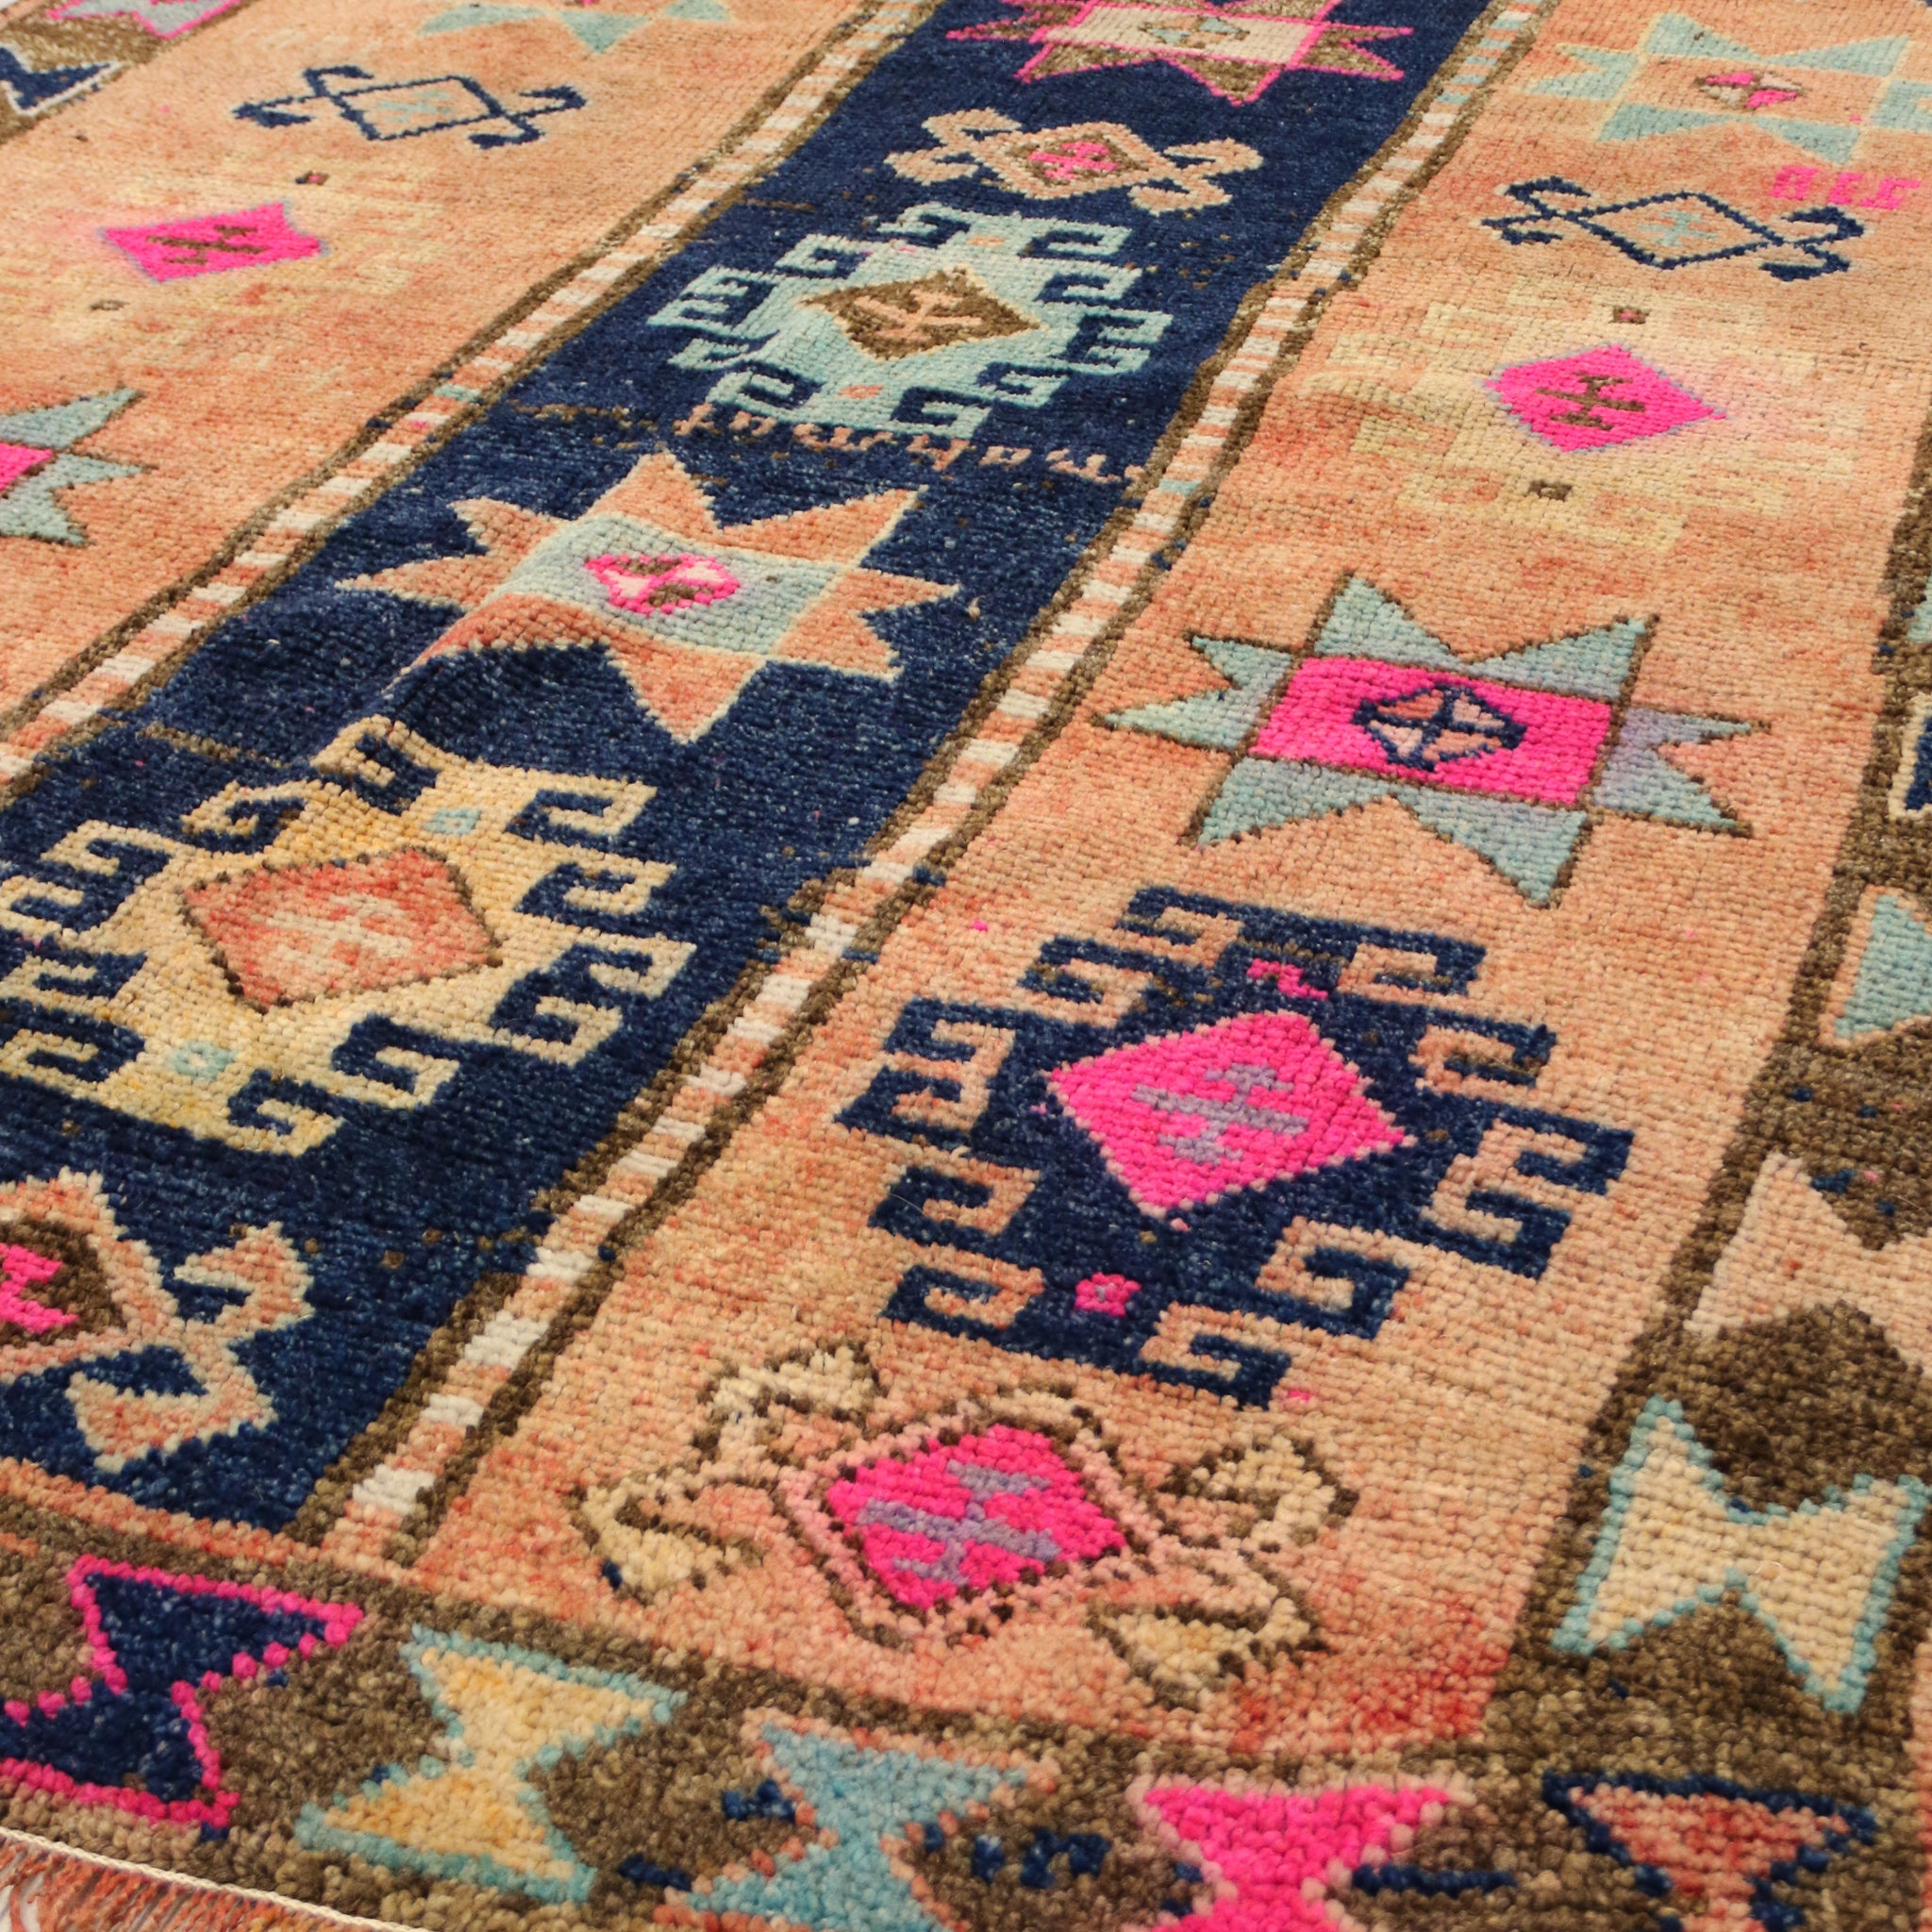 This tribal handwoven vintage Turkish rug has gorgeous, vibrant colors.  Thick, soft pile. Navy, rust/peach, hot pink, olive, and light blue. Herki.